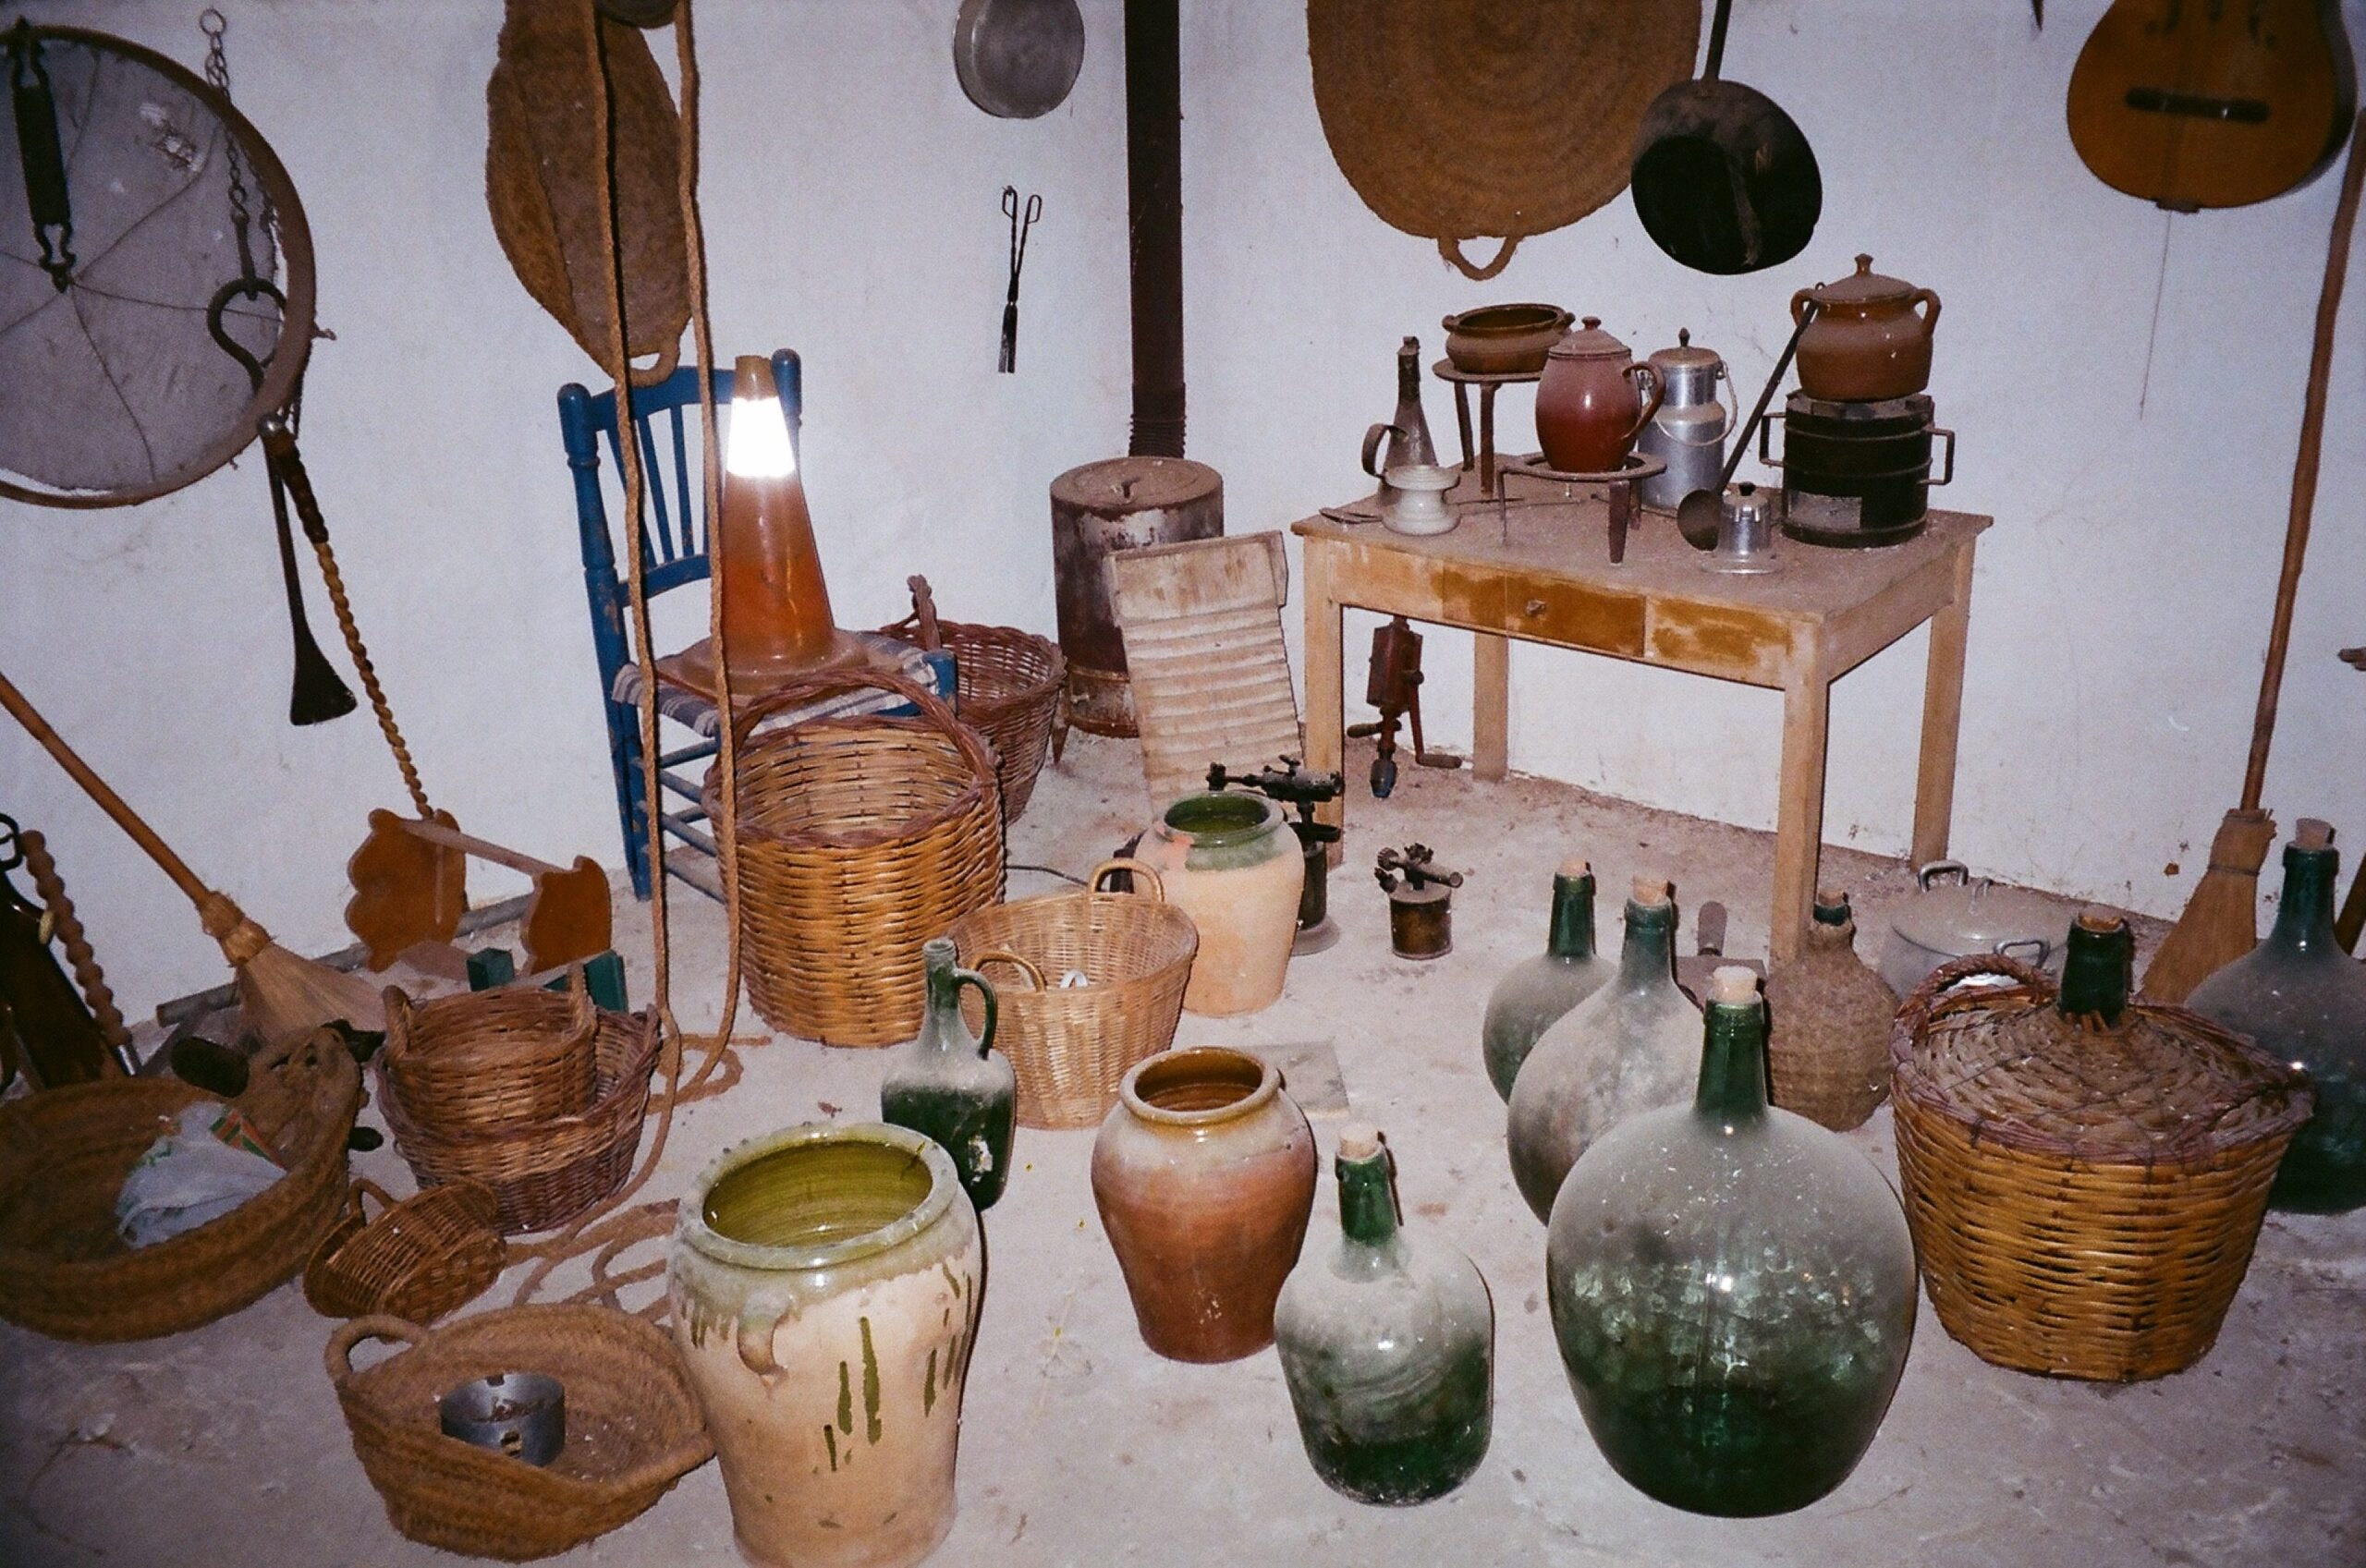 A series of pots, wicker jars, and glass bottles covered in dust in the corner of the loft of an old house.